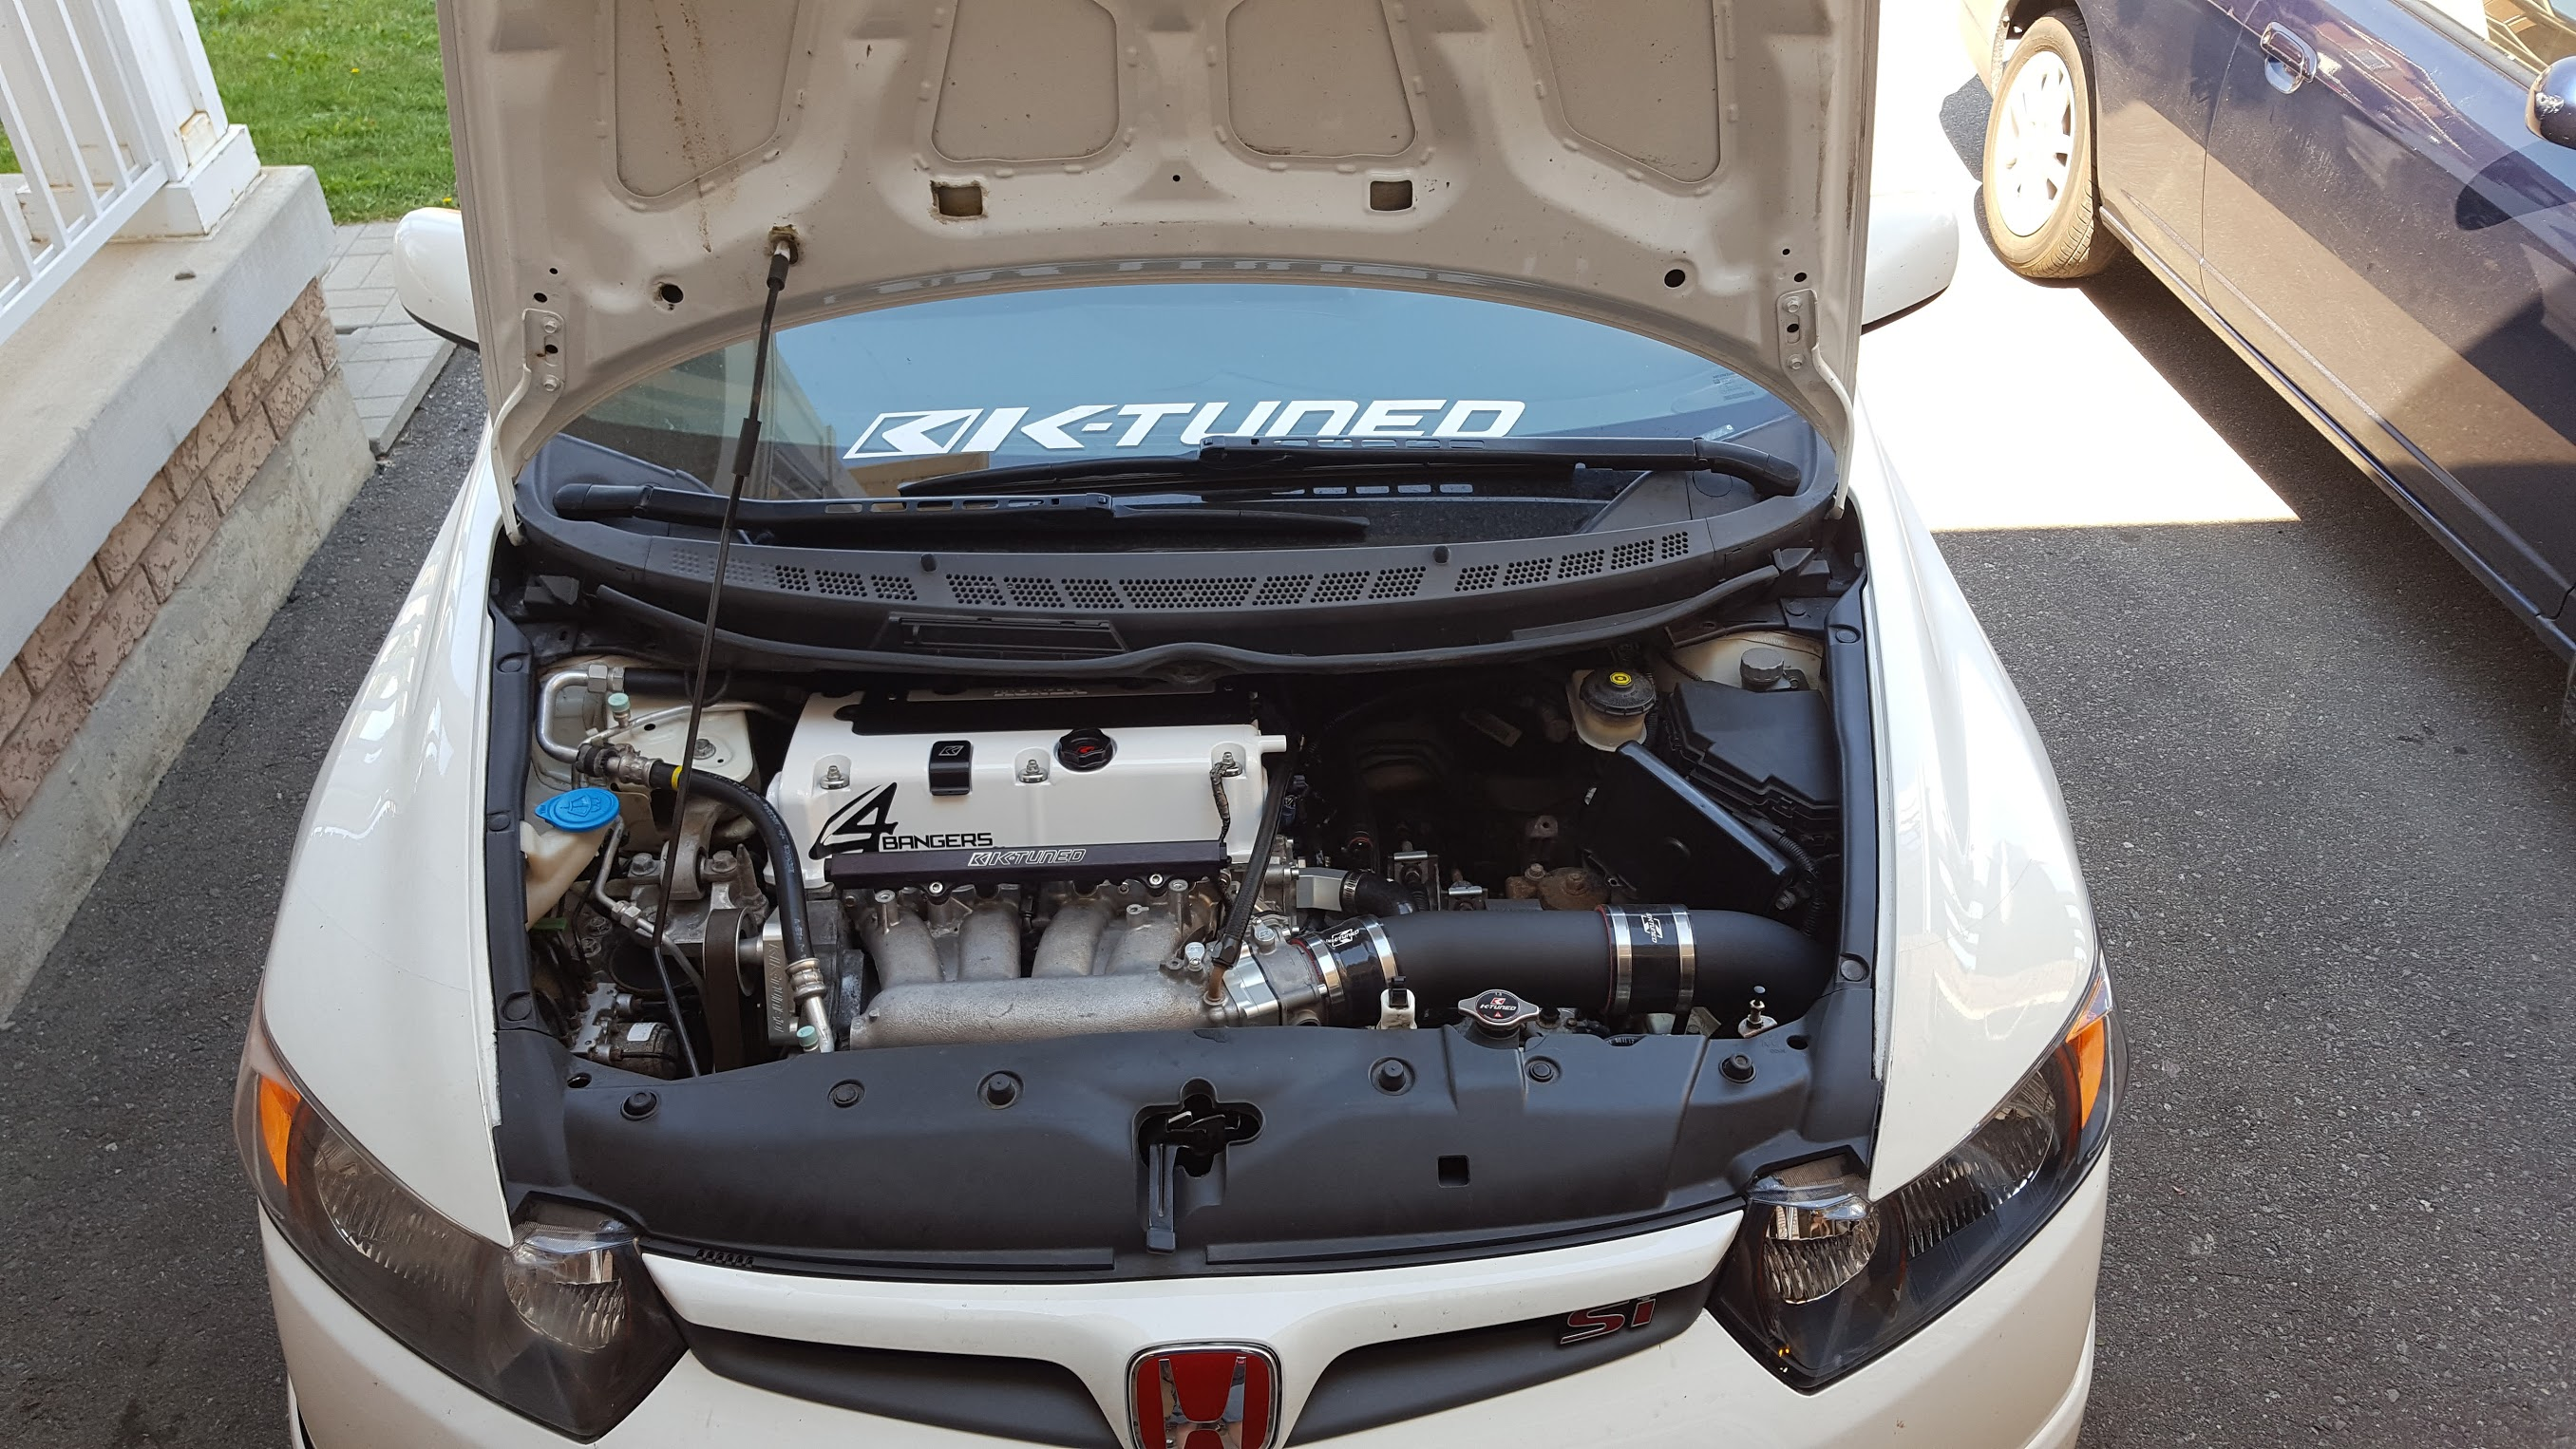 8th Gen Intake Br Short Ram And Cai